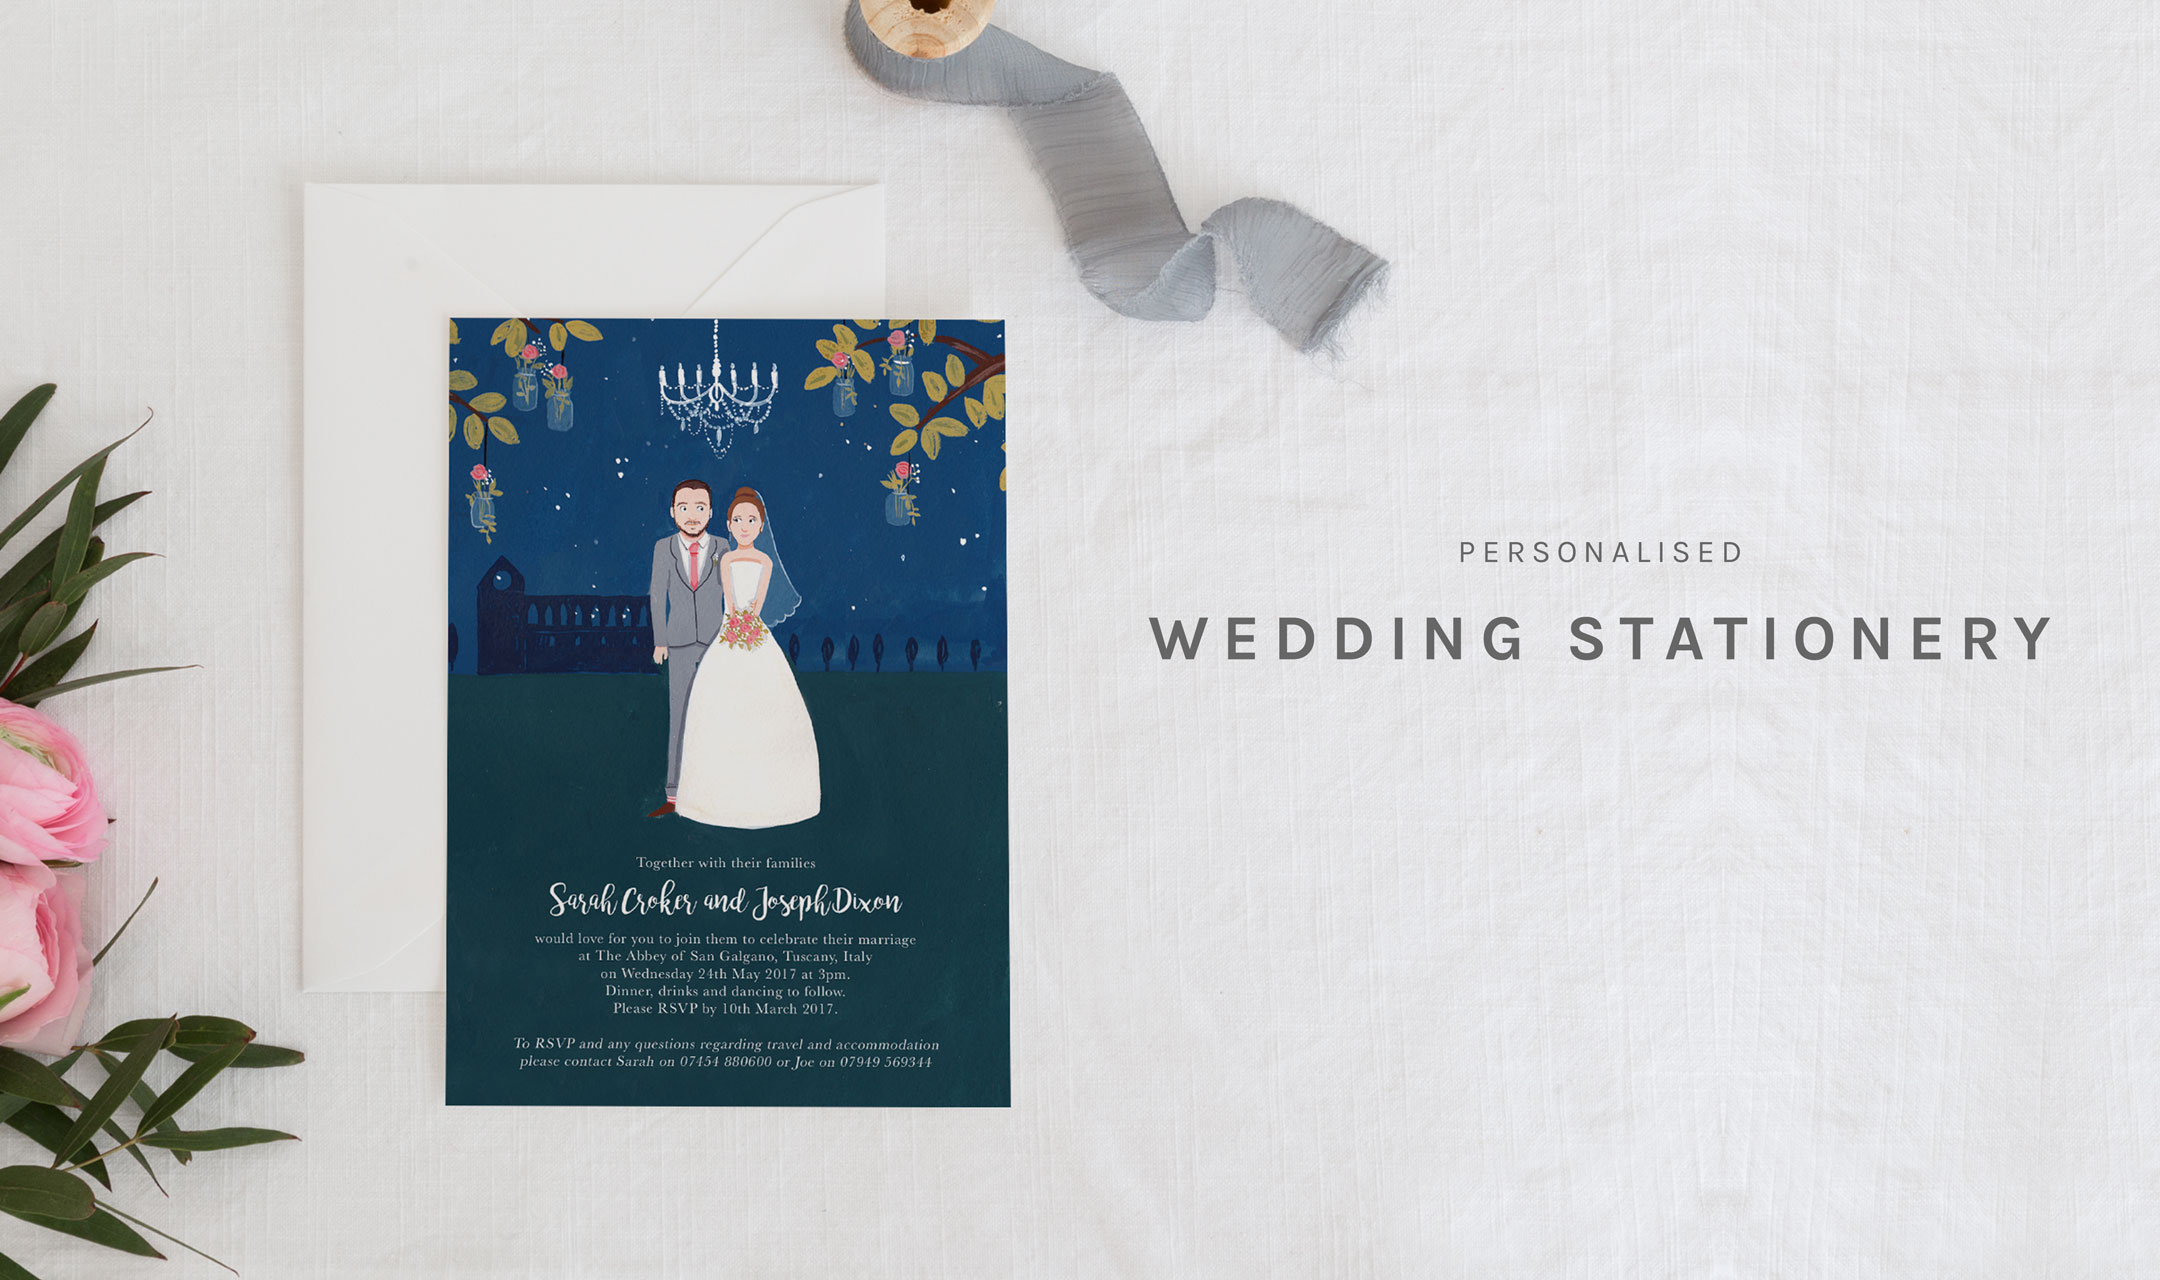 Wedding Stationery - NEW 17 - Greetings from Sarah